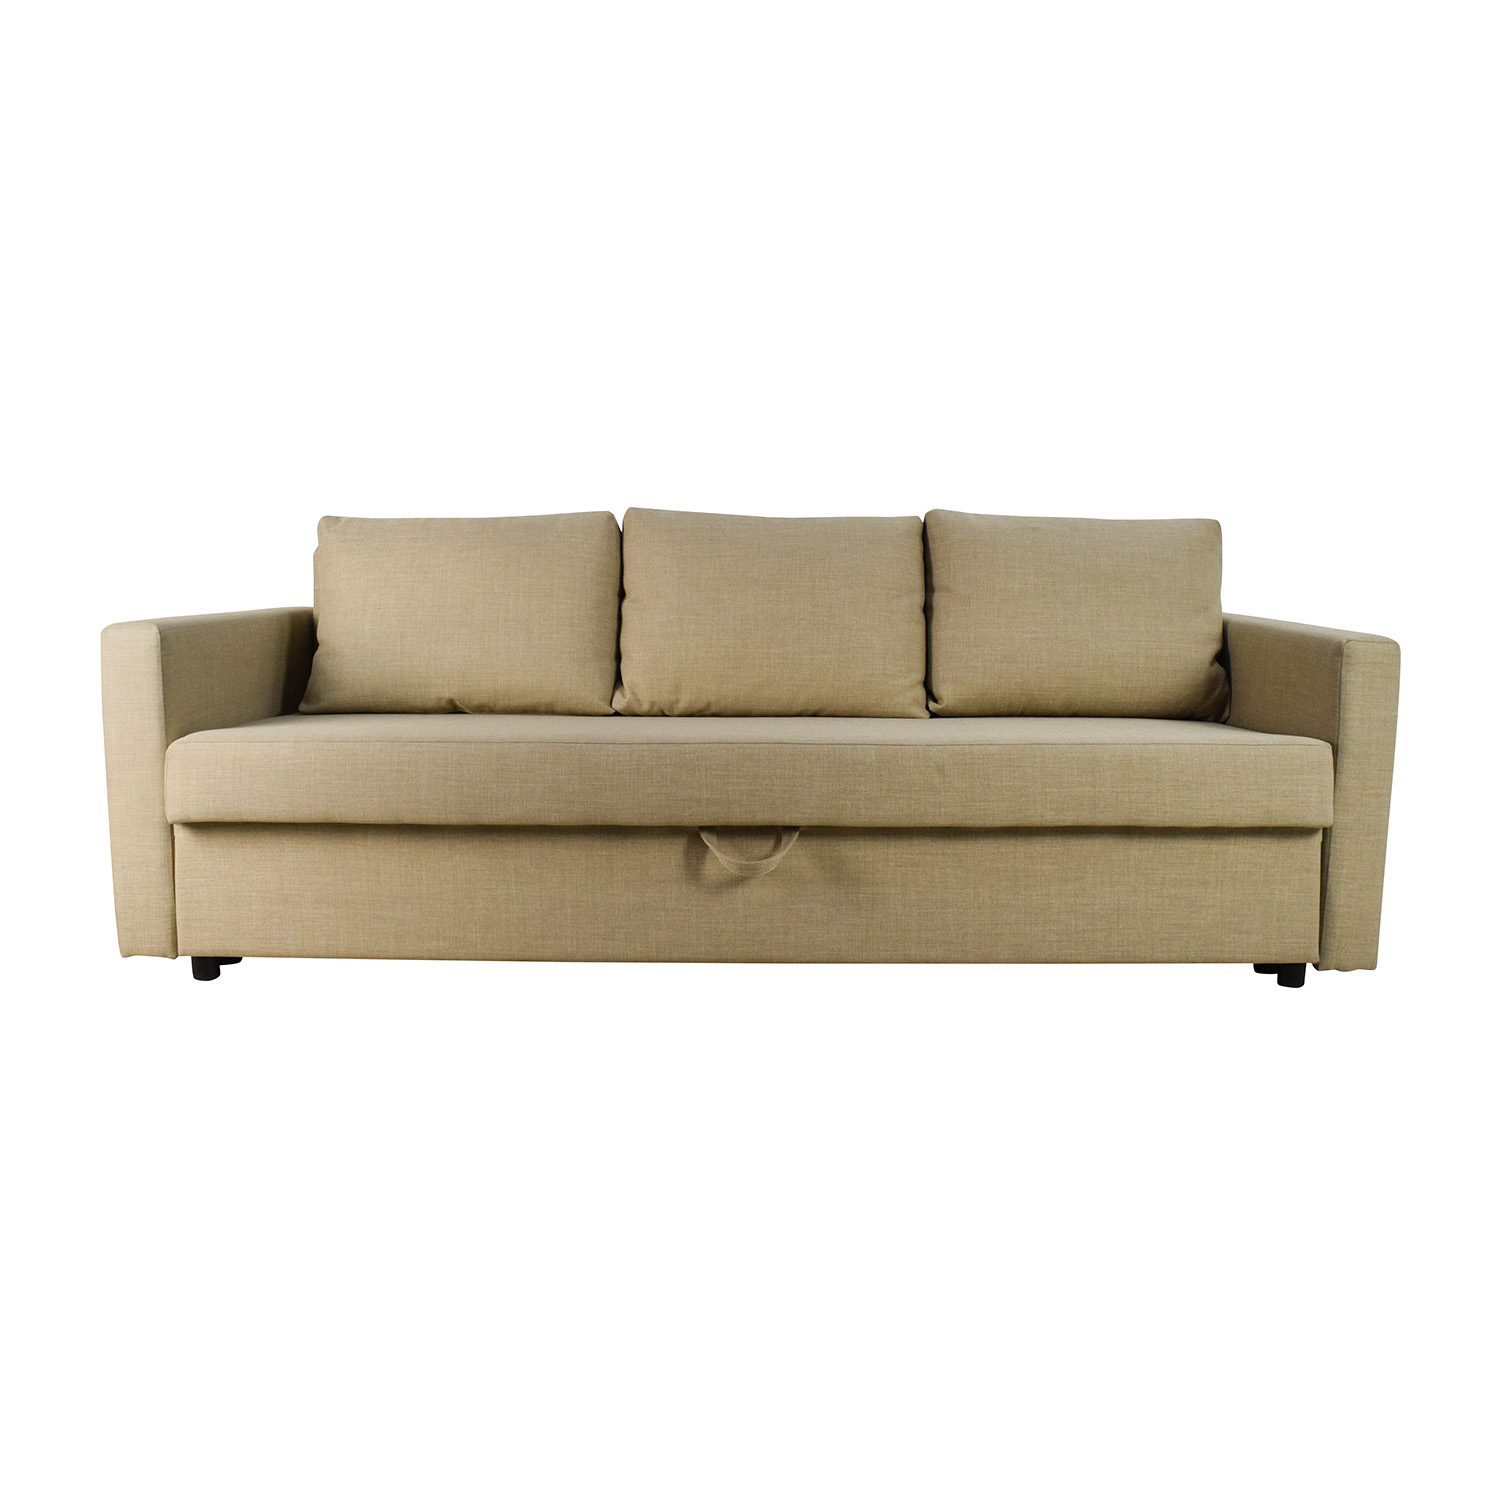 62 Off Ikea Friheten Sleeper Sofa With Storage Sofas